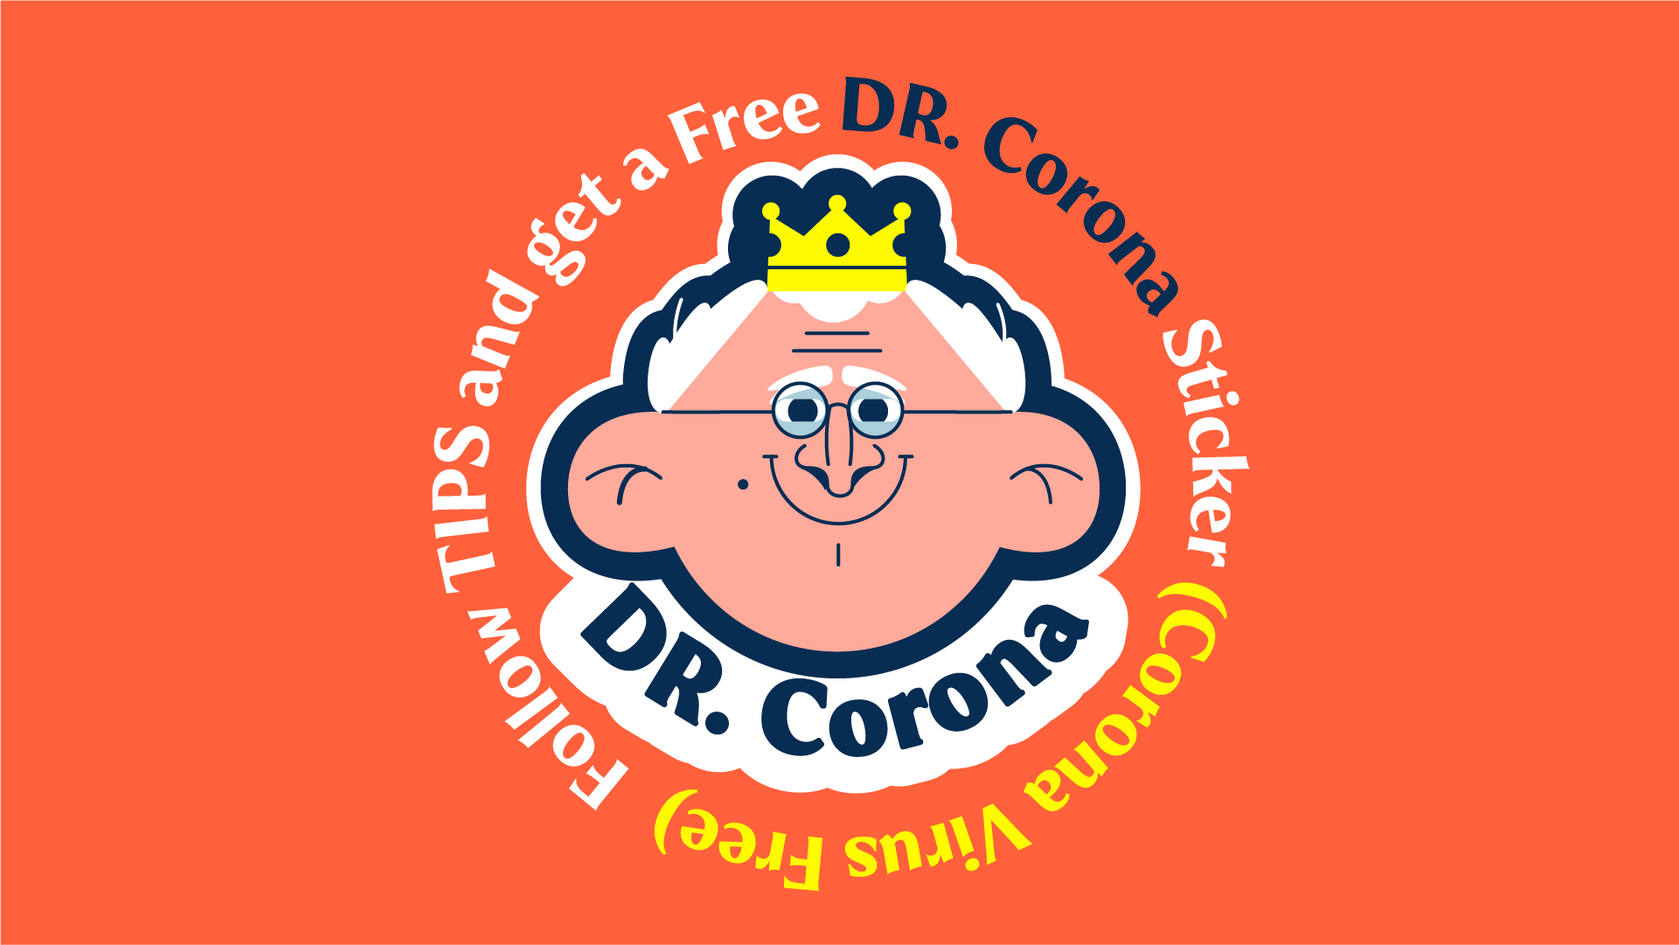 DR_CORONA__STYLEFRAMES-11.png